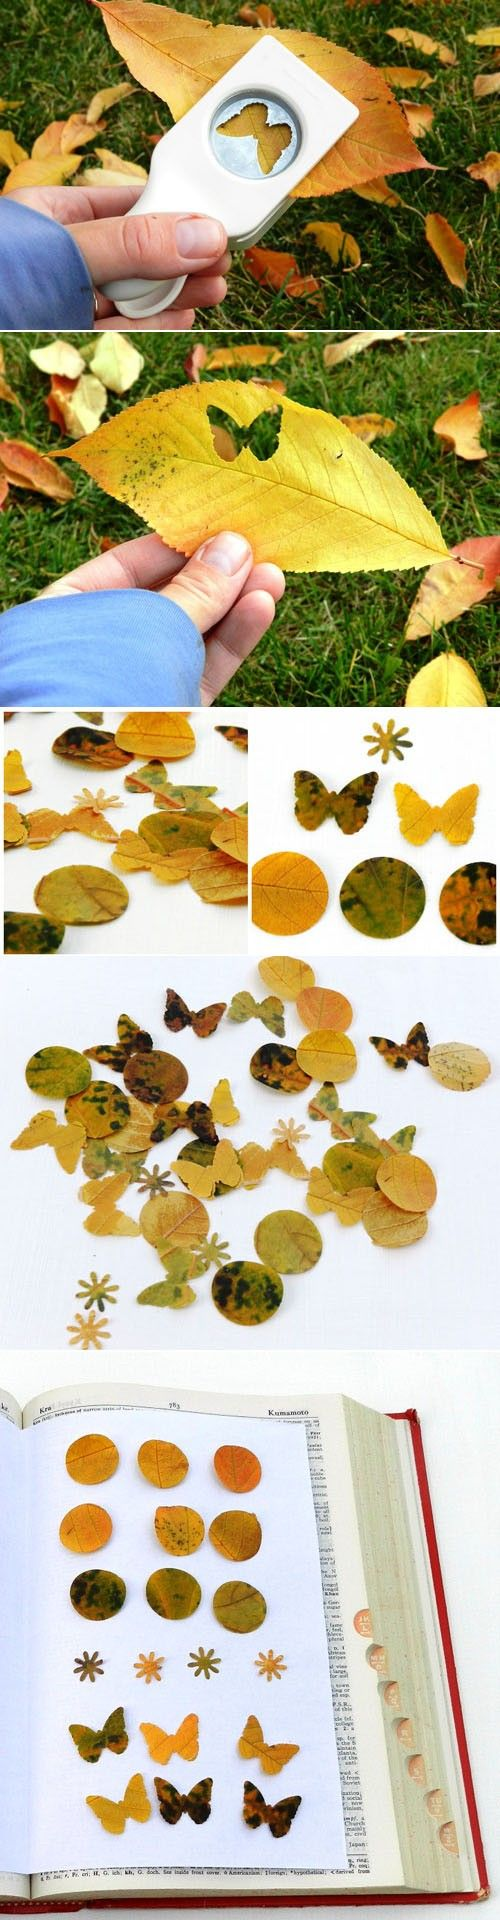 This is awesome! Punching shapes from autumn leaves.... great new use of natural…